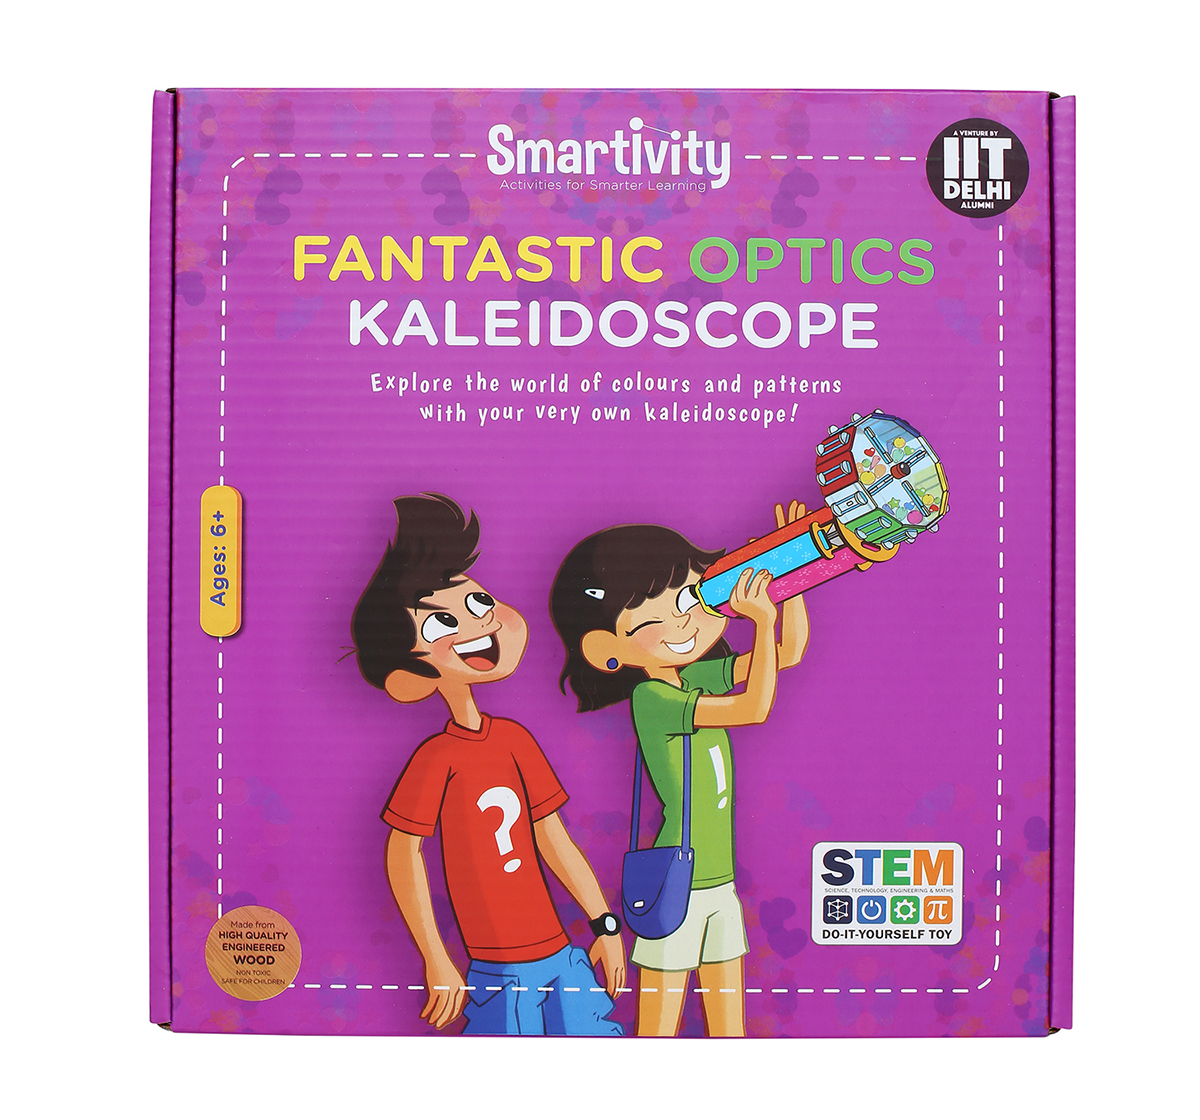 Smartivity | Smartivity Fantastic Optics Kaleidoscope:  Stem, Learning, Educational and Construction Activity Toy Gift for Kids age 6Y+ (Multi-Color)